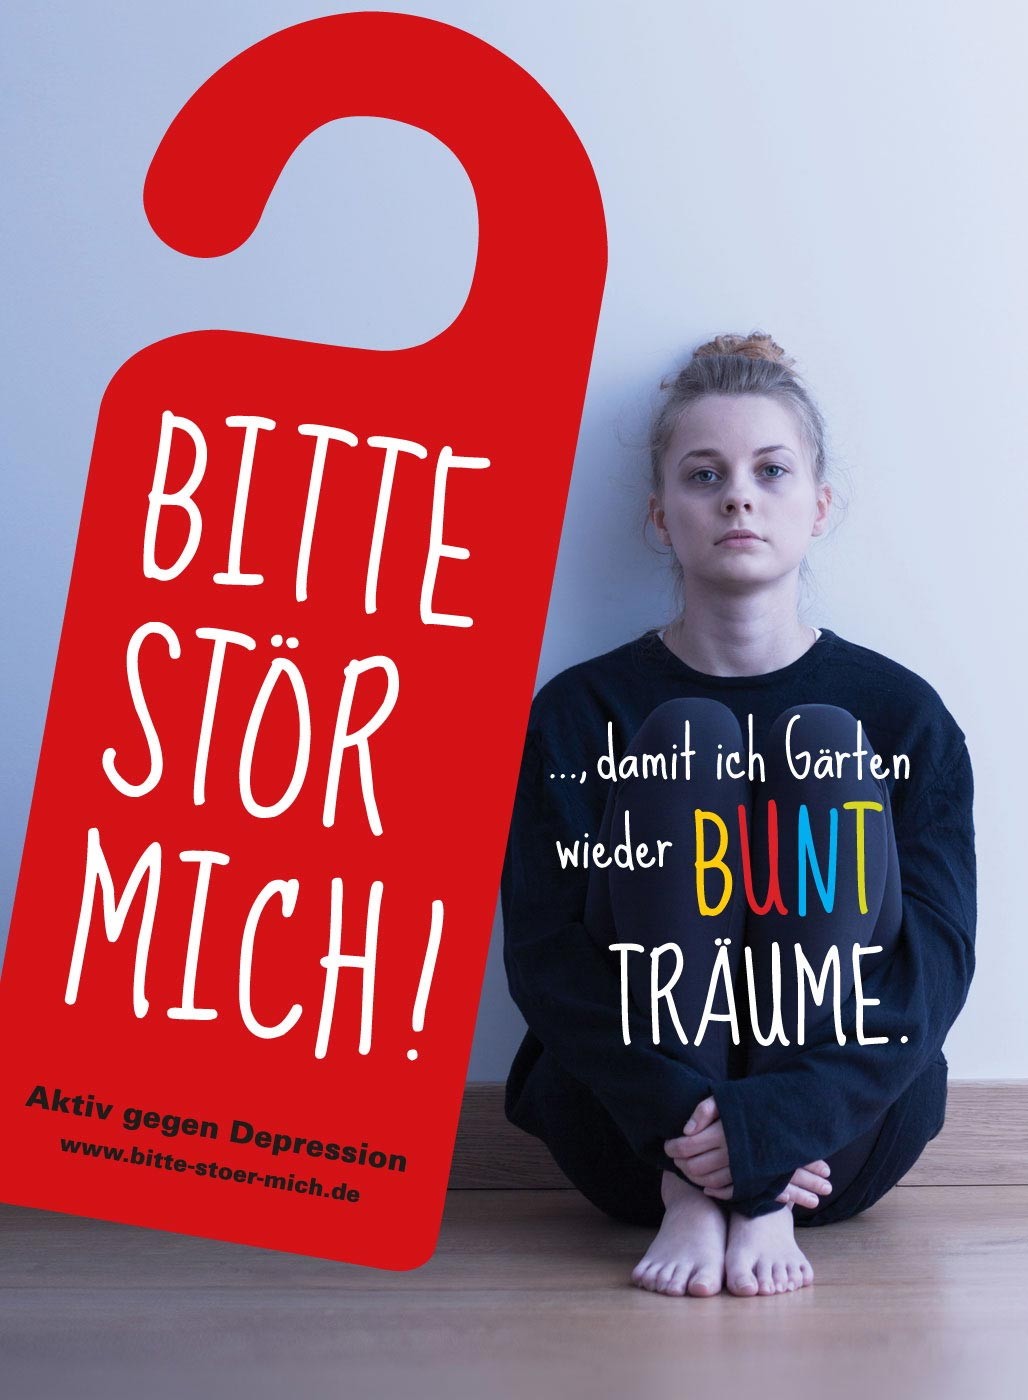 depression_bitte_stoer_mich